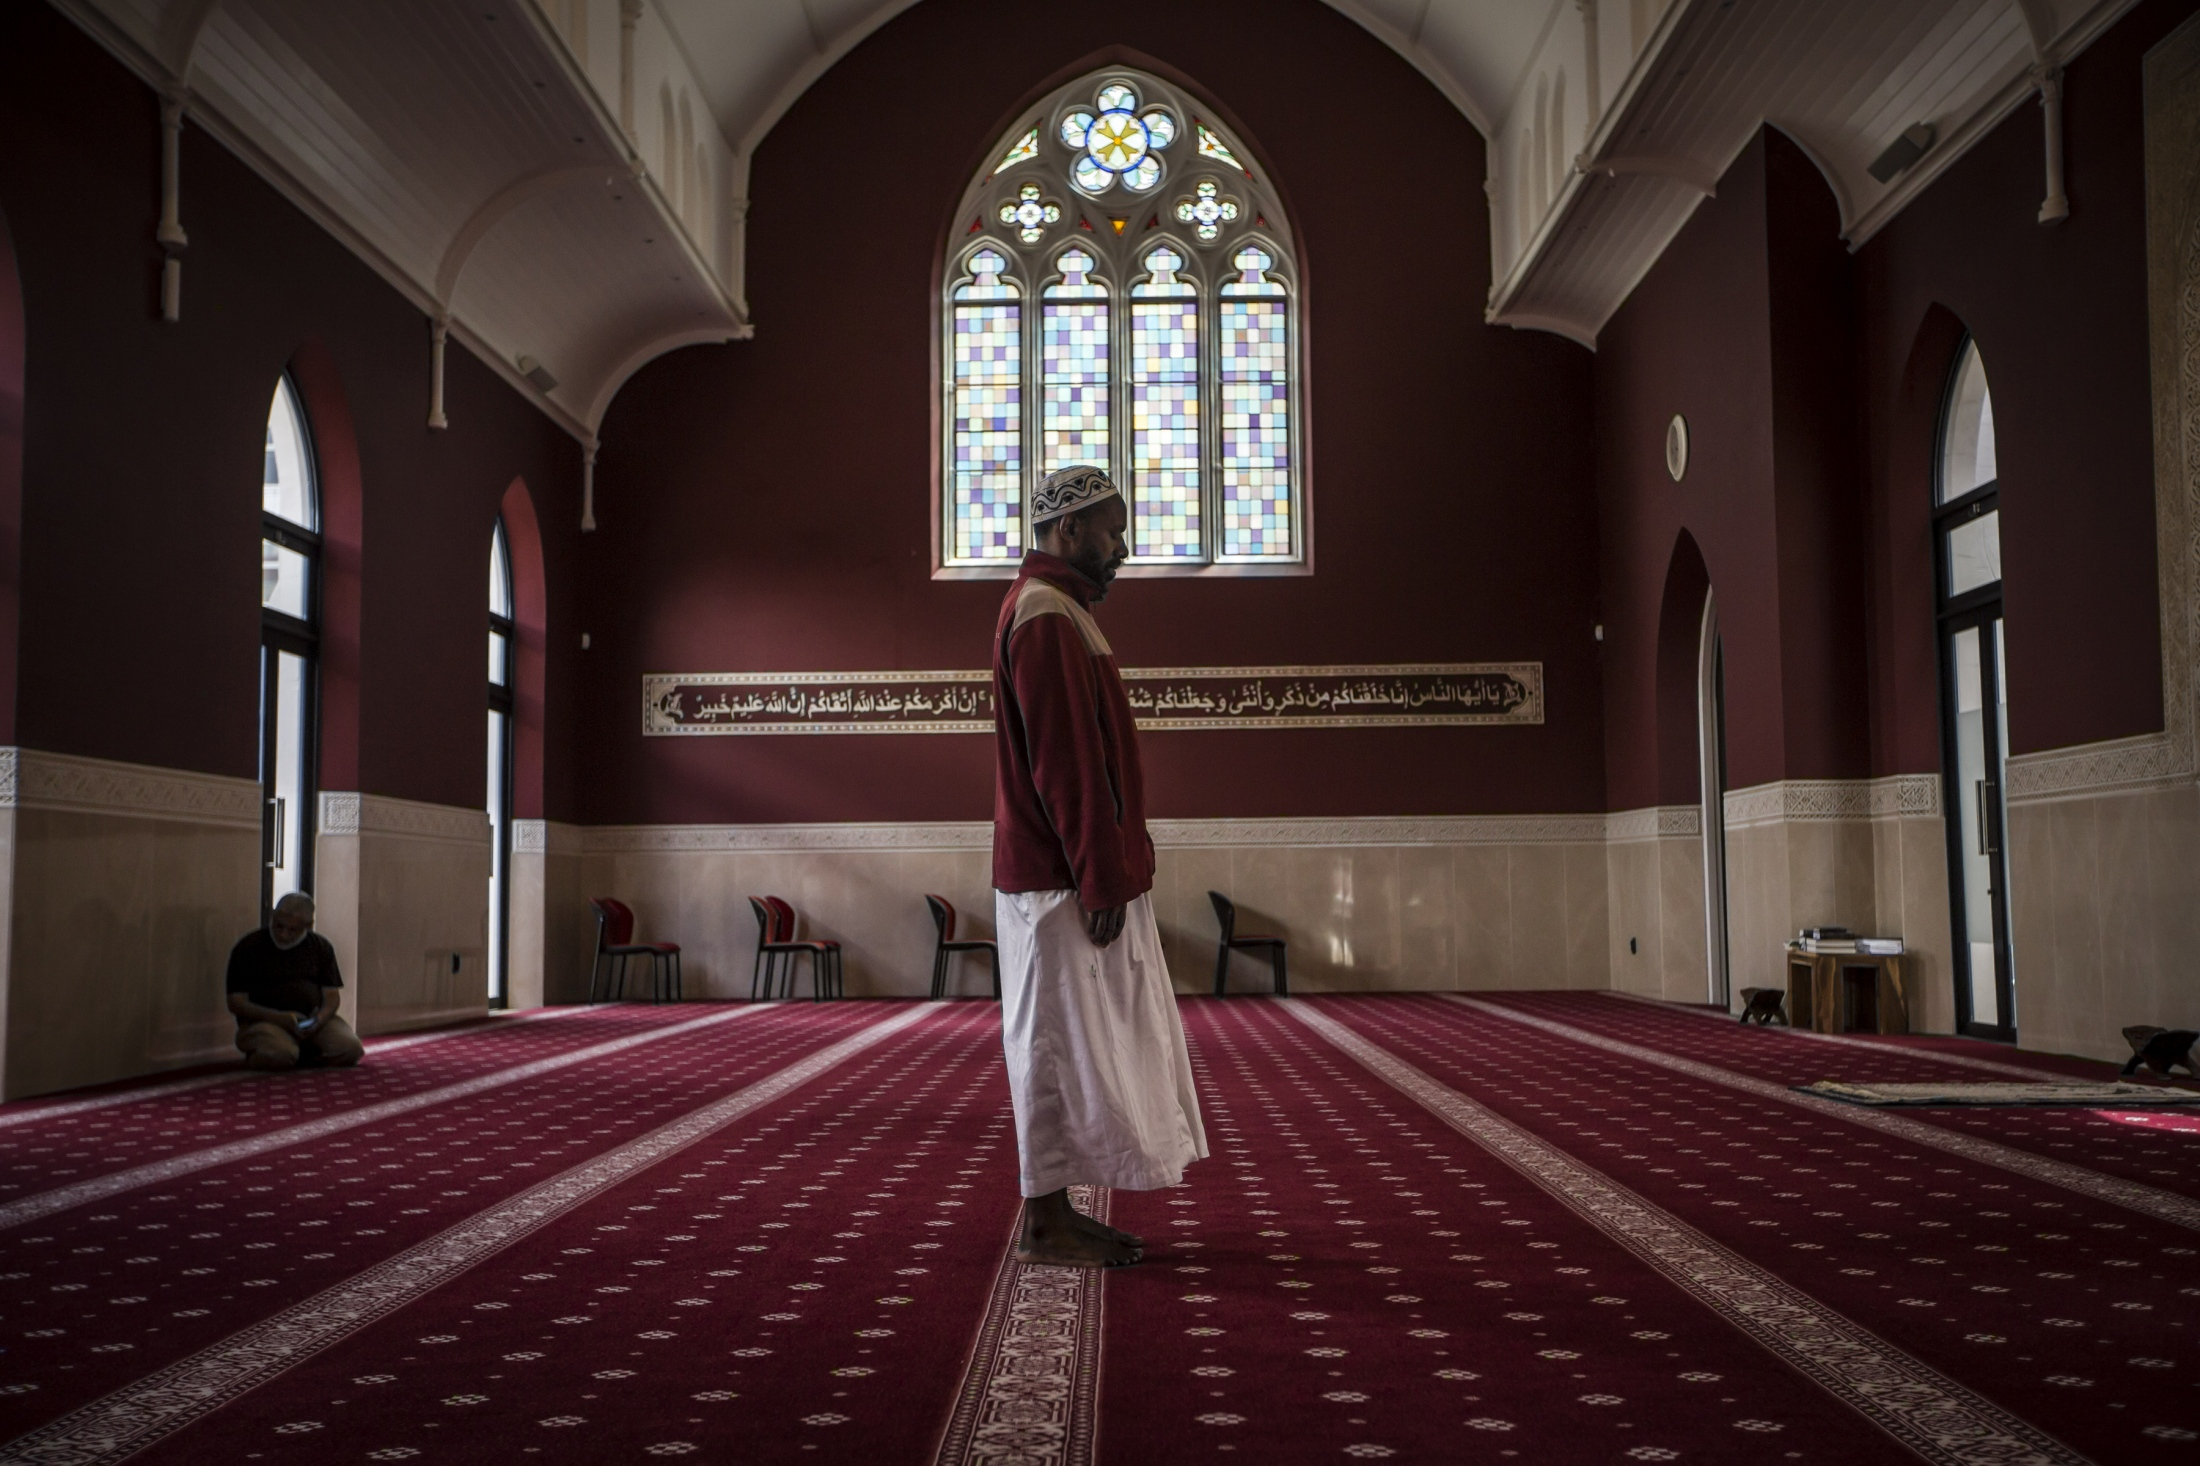 "A man prays in the Heritage Mosque on the Durban Heritage Belt,  Samora Michel Street, Durban South Africa. The 110-year-old building was originally a house of worship for United Congregational Church and while parts of the interior has been restored and most of it revamped in 2017, the Gothic Revival inspired exterior remains unchanged from when it was built in 1904. During the apartheid regime the Group Areas Act limited the number of places of worship that communities of colour could have and so the Grey and West street mosques were the only places for muslims to pray in the entire Durban CBD. In the words of journalist Farook Khan who is pictured sitting in the background: ""The most oppressed people lived in barracks stretching from the waterfront right across what became known as the Central Business District to Sydenham Hill. The minority were white, affluent and in total control of everything, especially their places of worship which excluded their brethren of the darker breed. Some of the privileged class did help build churches for the exclusive use of people of colour, but outside the city limits. But when it came to Muslims and Hindus, no matter their burden or plight, they built their own places of worship. They lived and survived around spiritual places, which became rallying points to celebrate, grieve, protest, resist and unite against oppression."" Surviving two attempted demolishings, today the mosque and adjacent hall has once again become a place of worship and community."